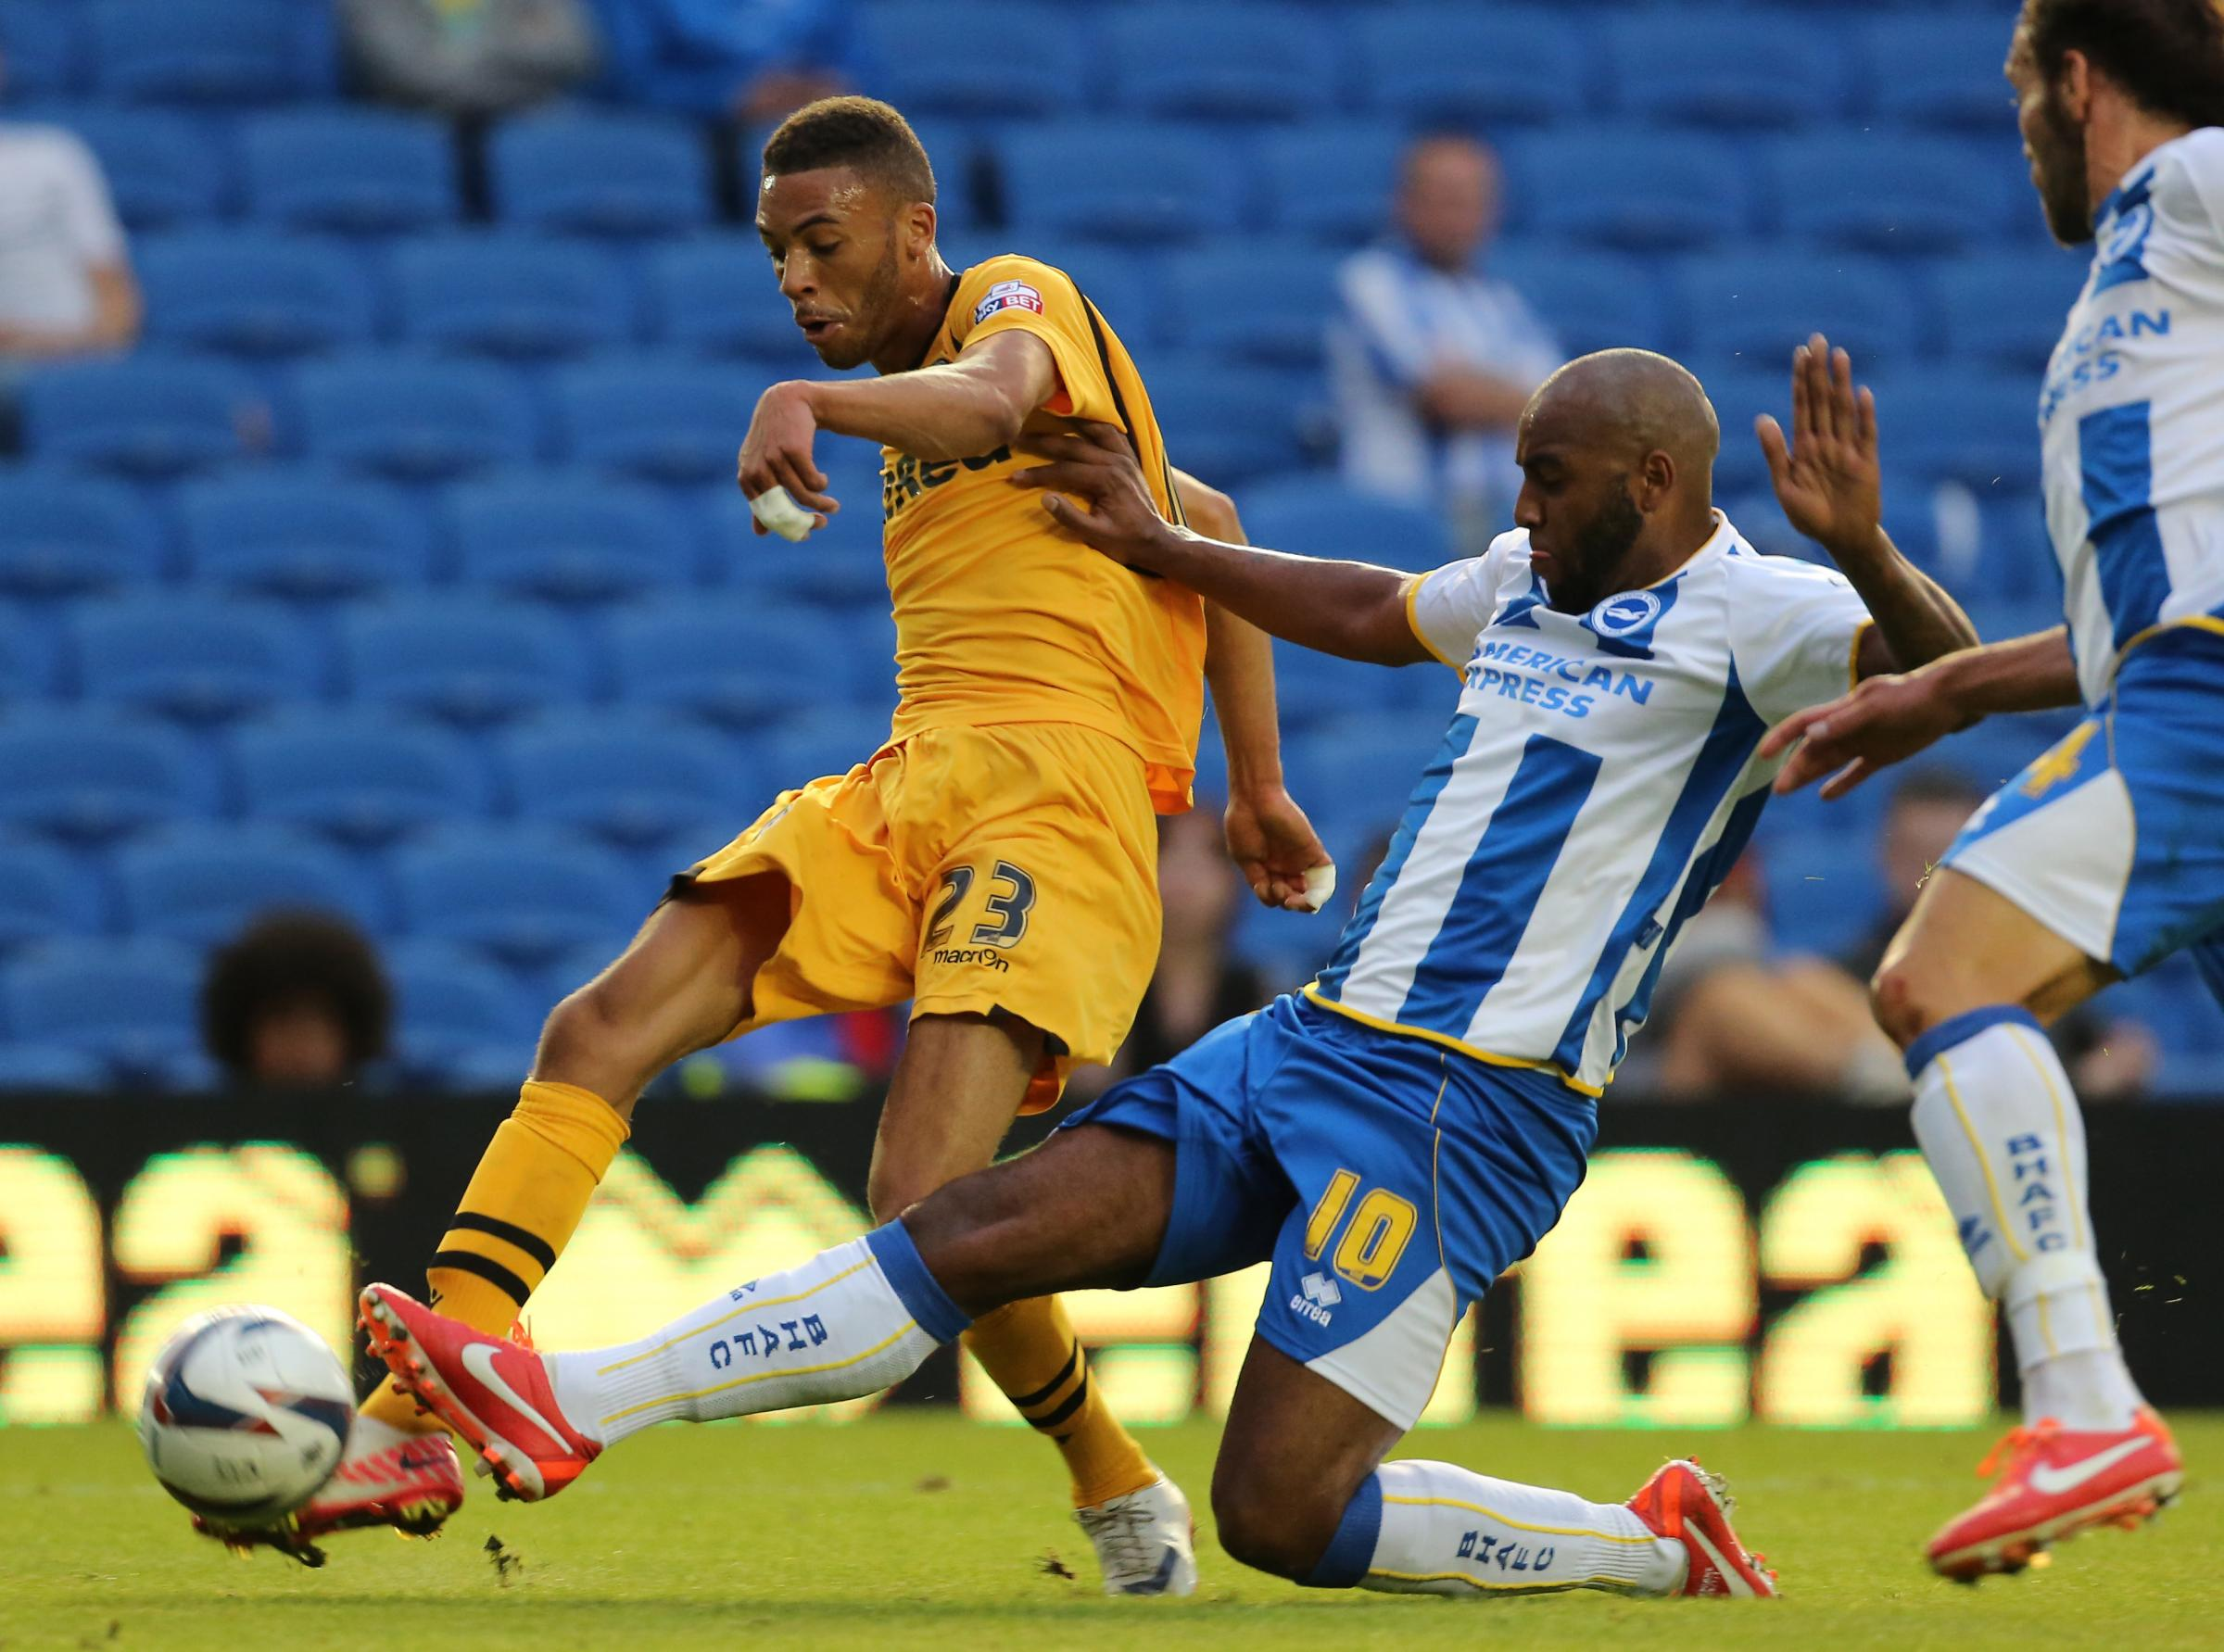 NO DEAL: Kemy Agustien in action for Brighton & Hove Albion against Newport County in the League Cup in 2013